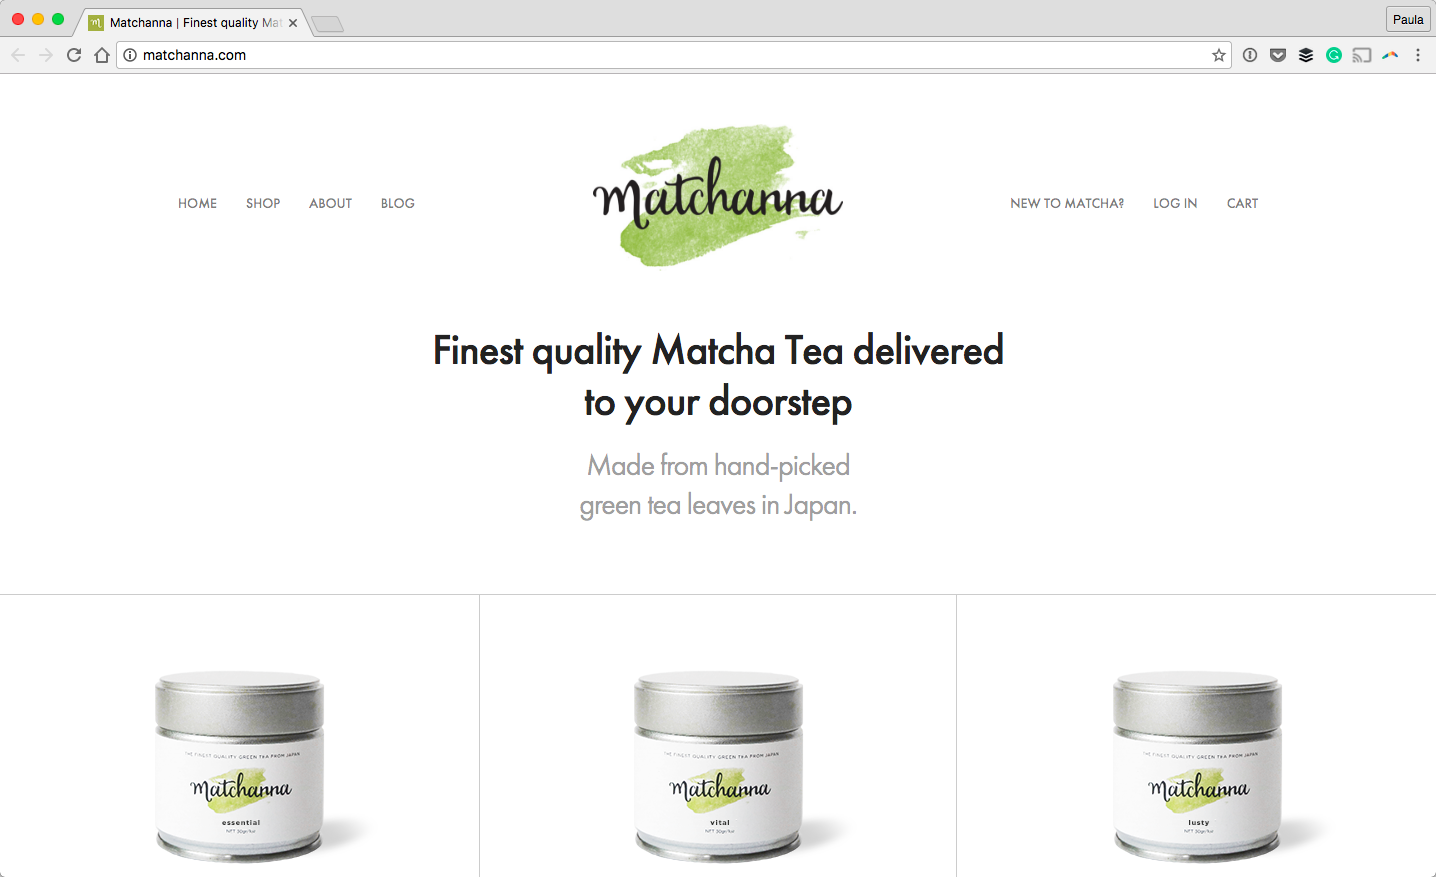 matchanna-finest-quality-matcha-tea-in-a-no-hassle-monthly-subscription-2016-09-26-14-58-01